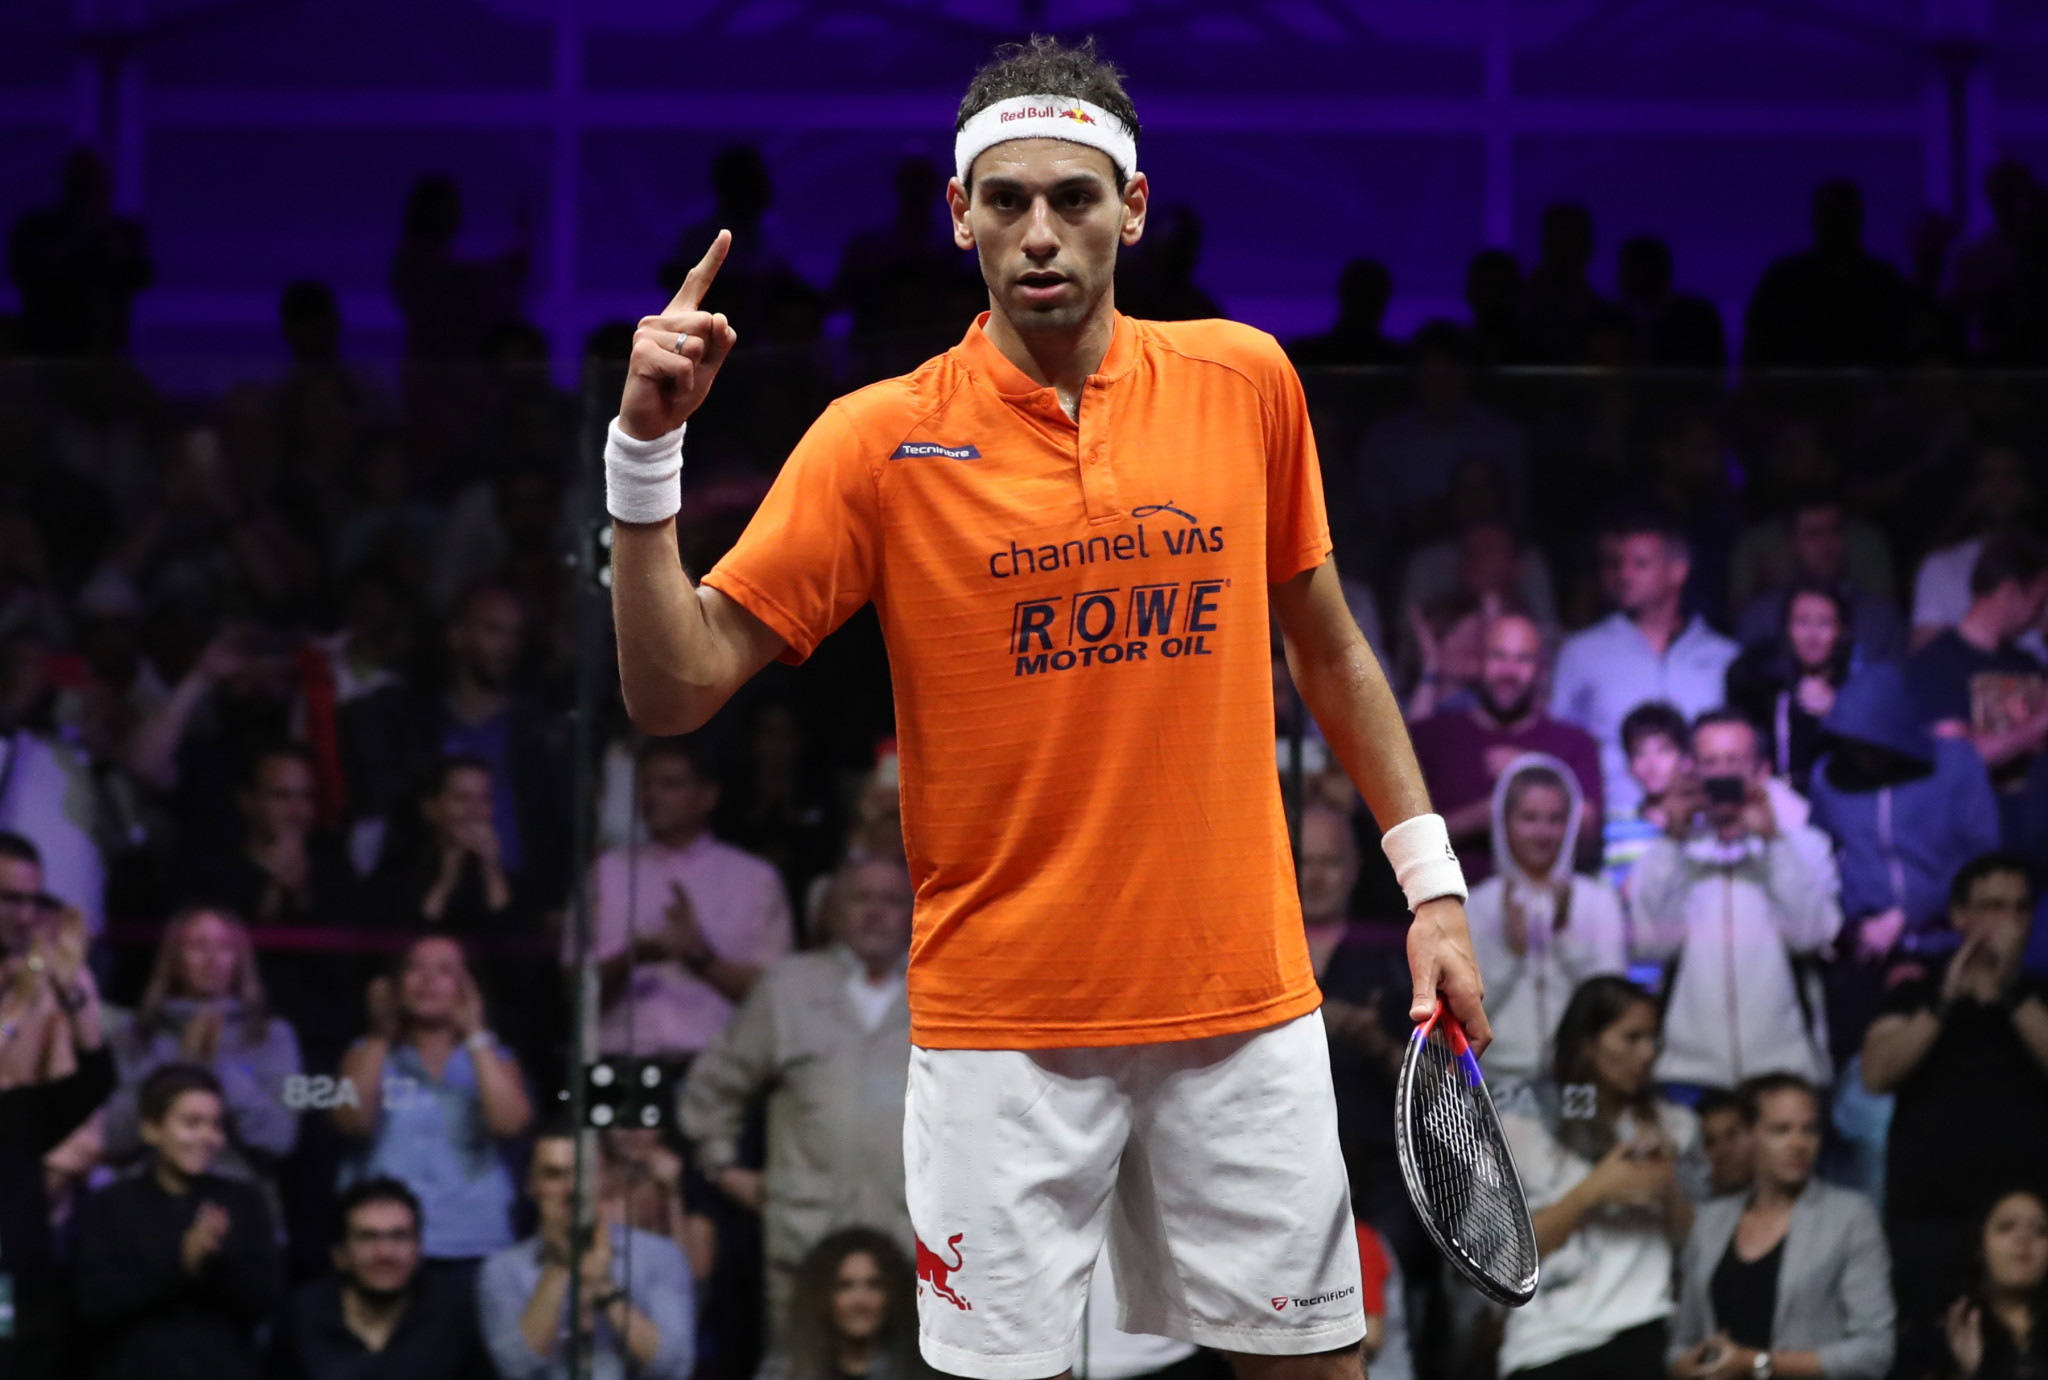 Mohamed Elshorbagy through to Grasshopper Cup semi-finals but top seed dumped out